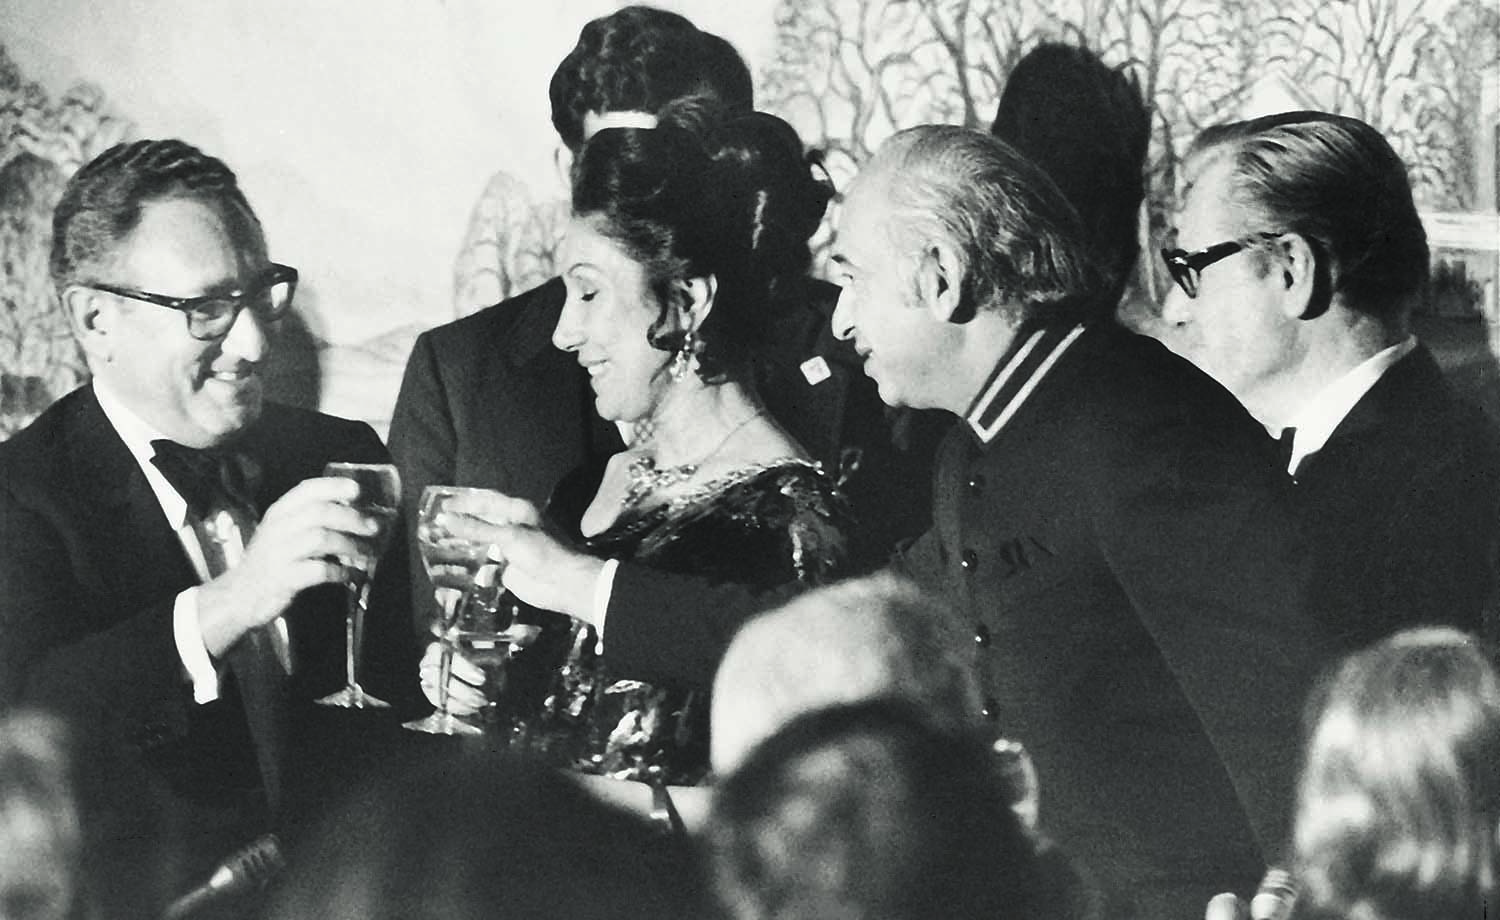 Prime Minister Zulfikar Ali Bhutto was as comfortable, if not more, in the company of foreign dignitaries as he was with the masses at home. He is seen here in Washington DC with United States Secretary of State Henry Kissinger (left) during a visit in February 1975. Seen in the middle is Begum Nusrat Bhutto.